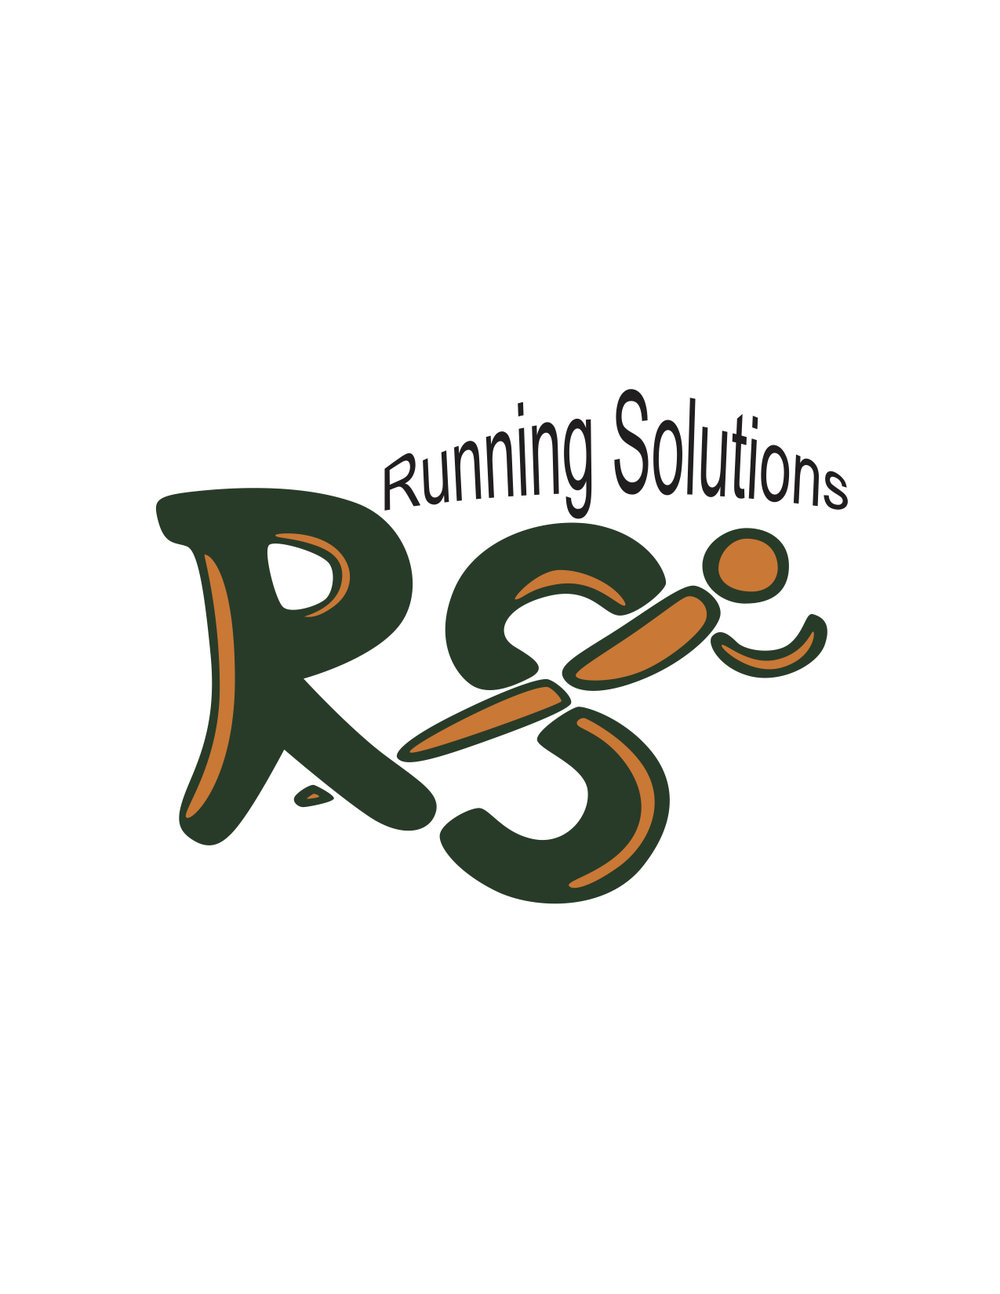 Running Solutions logo color.jpg